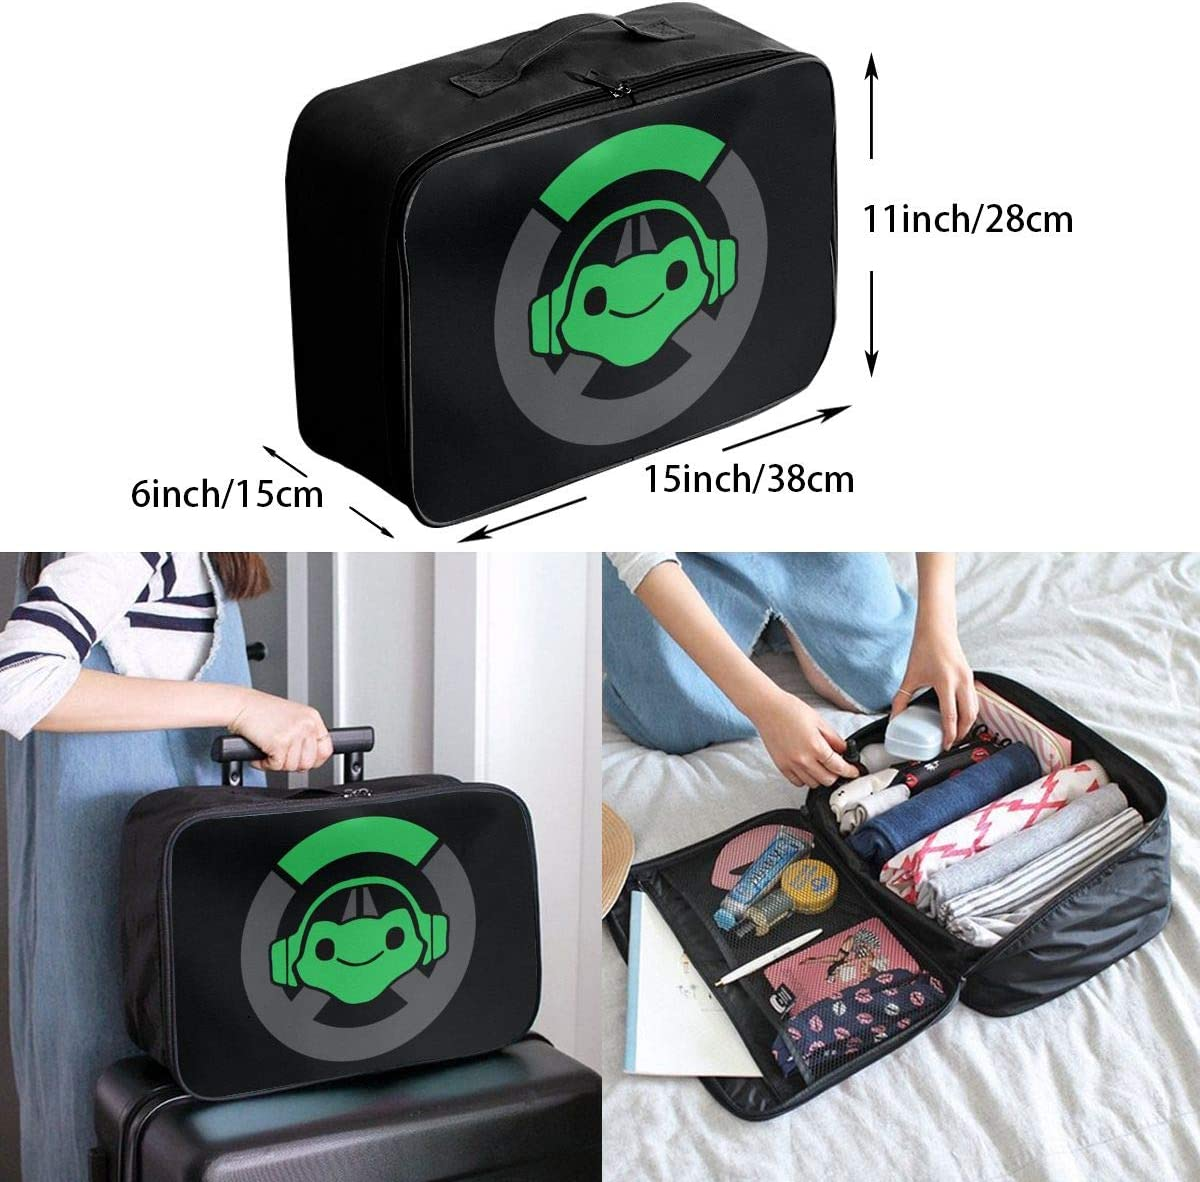 Lucio Overwatch Video Game Travel Duffel Bag Lightweight Large Capacity Portable Luggage Bag Weekender Carry-on Tote